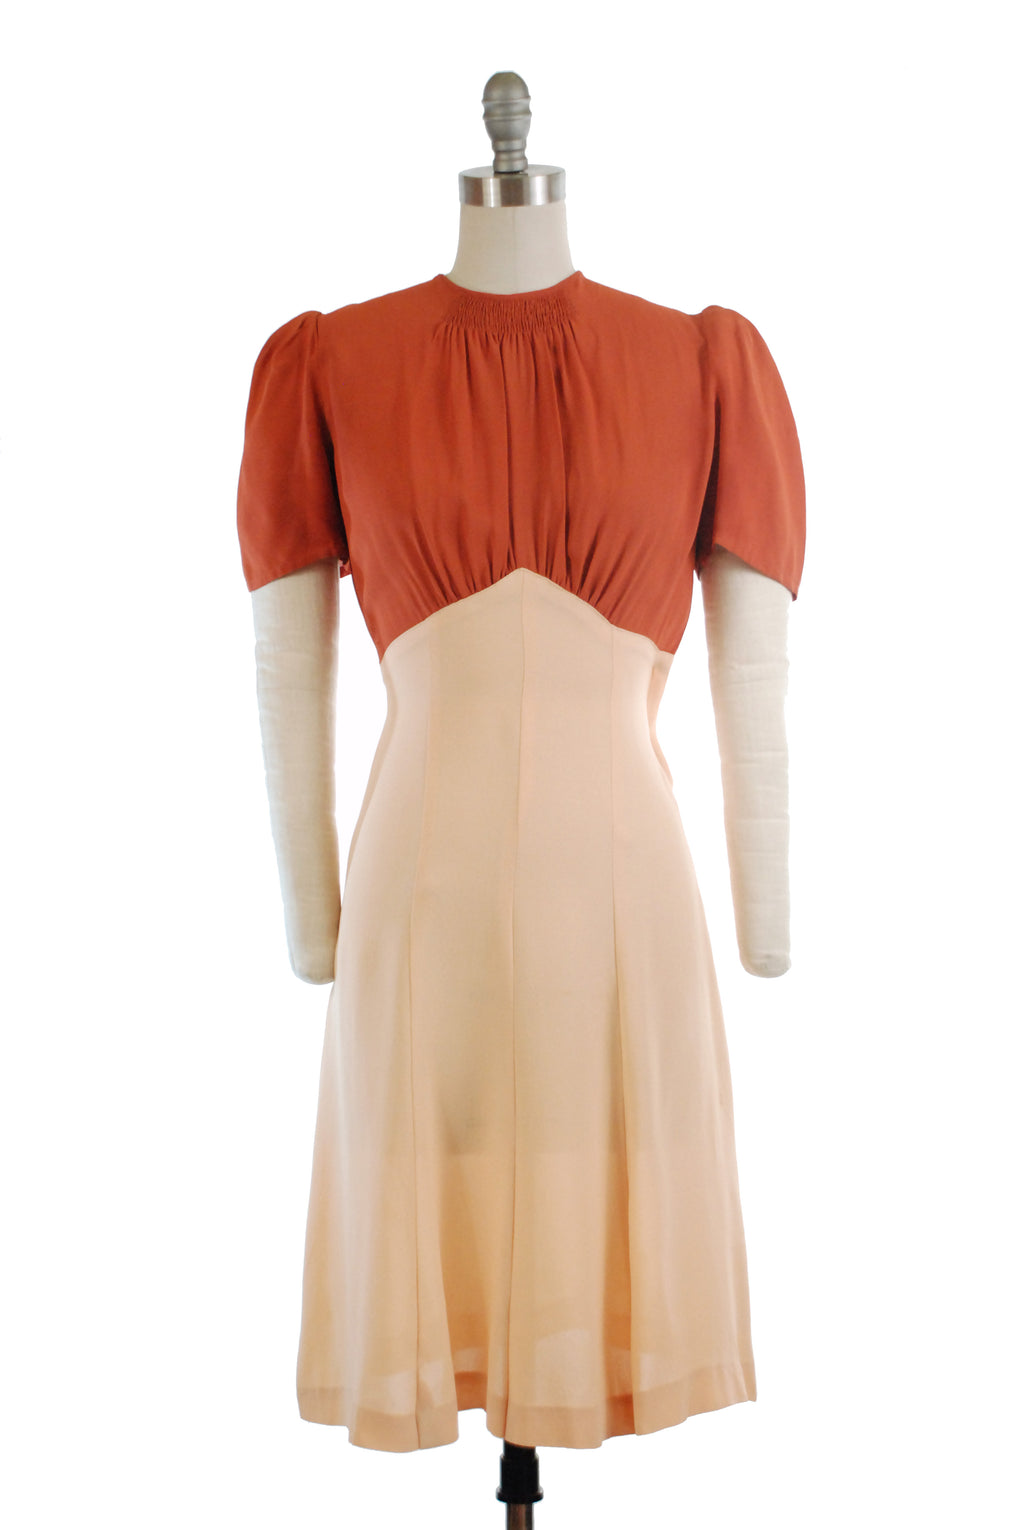 Charming c. 1939/1940 Day Dress in Colorblock with Puffed Sleeves